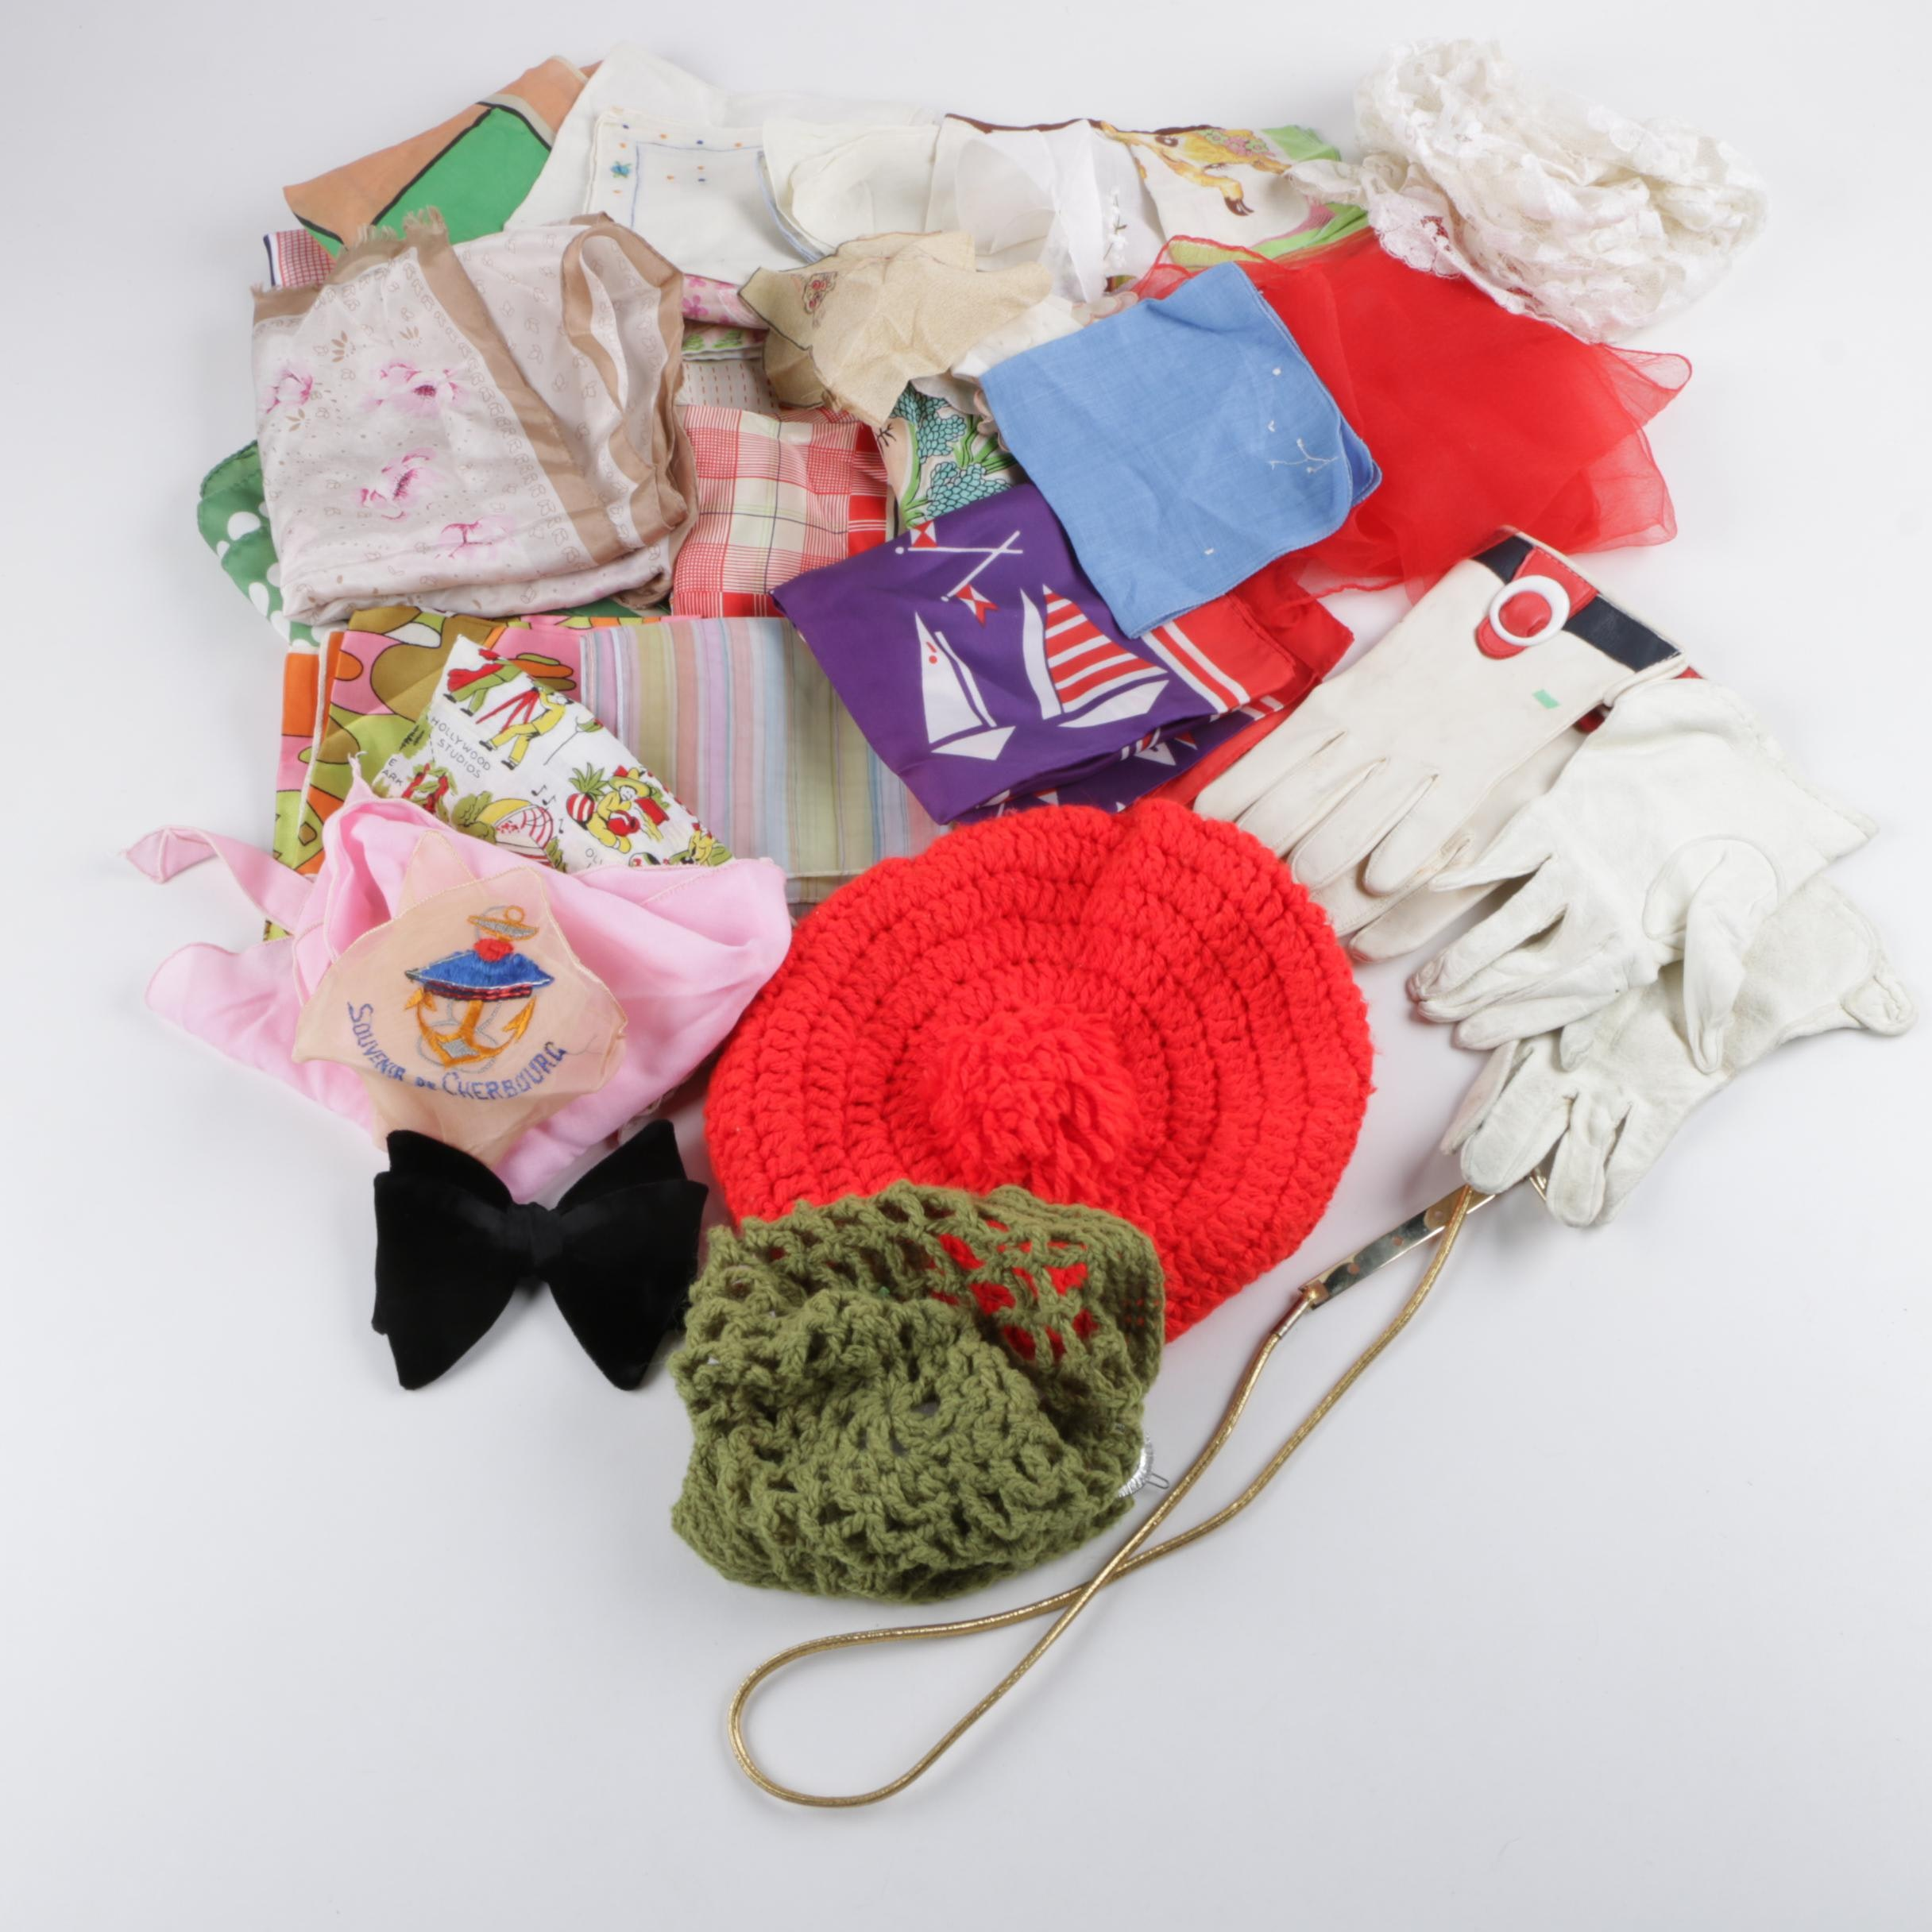 Women's Vintage Scarves and Accessories